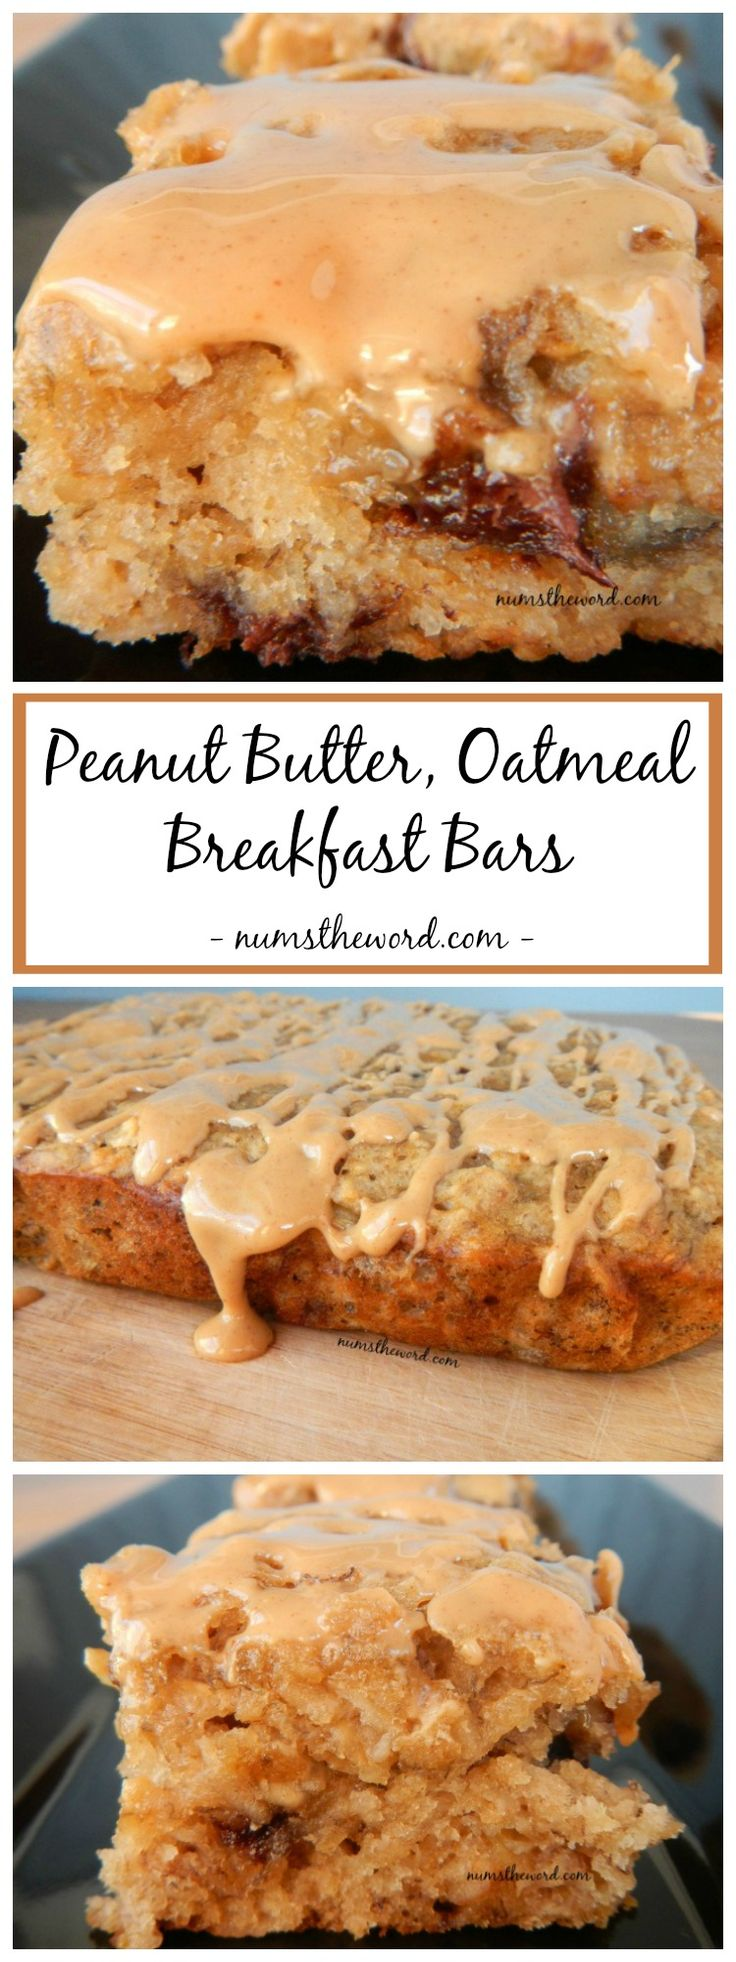 Peanut Butter, Oatmeal Breakfast bars are a great way to use up ripe bananas. Easy, delicious and perfect for on the go! Kid friendly!